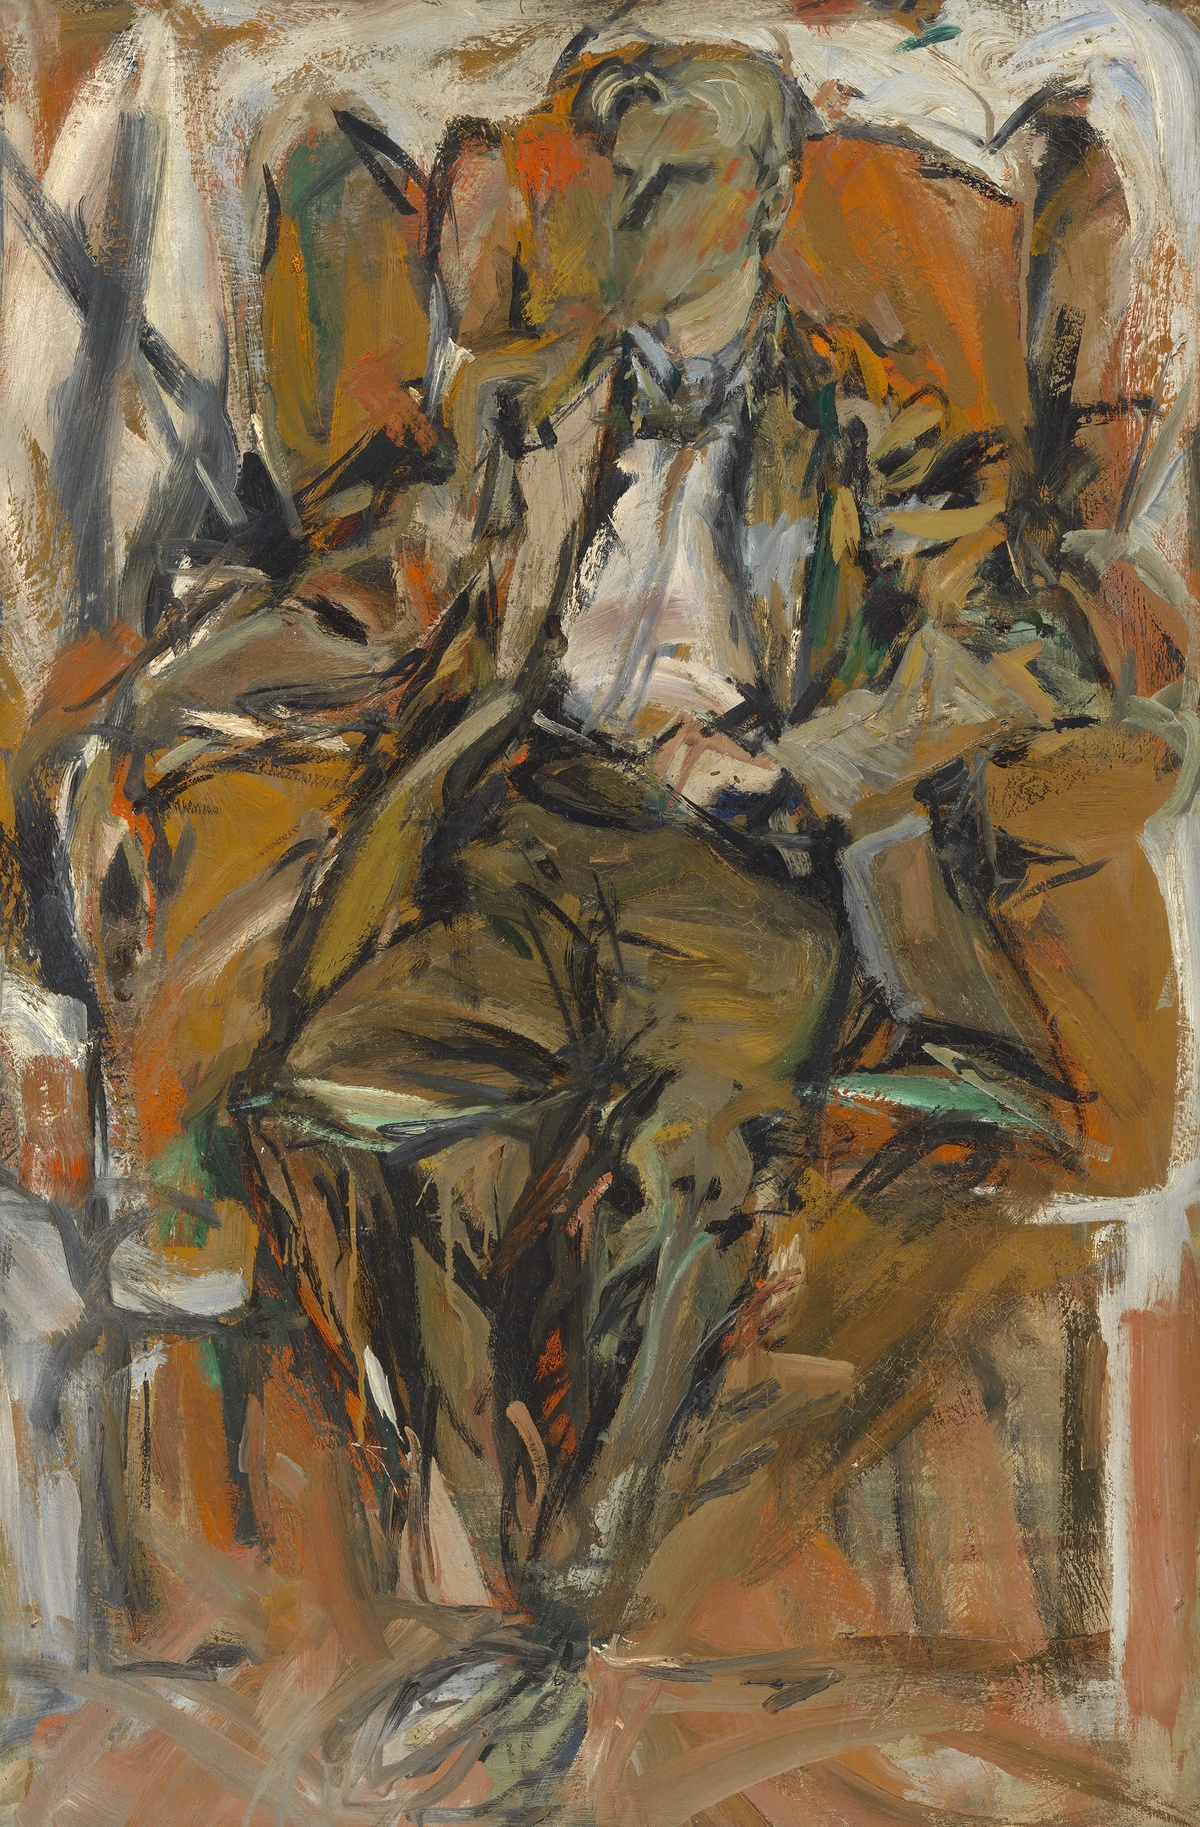 Portrait of Willem de Kooning, 1952 — Elaine de Kooning